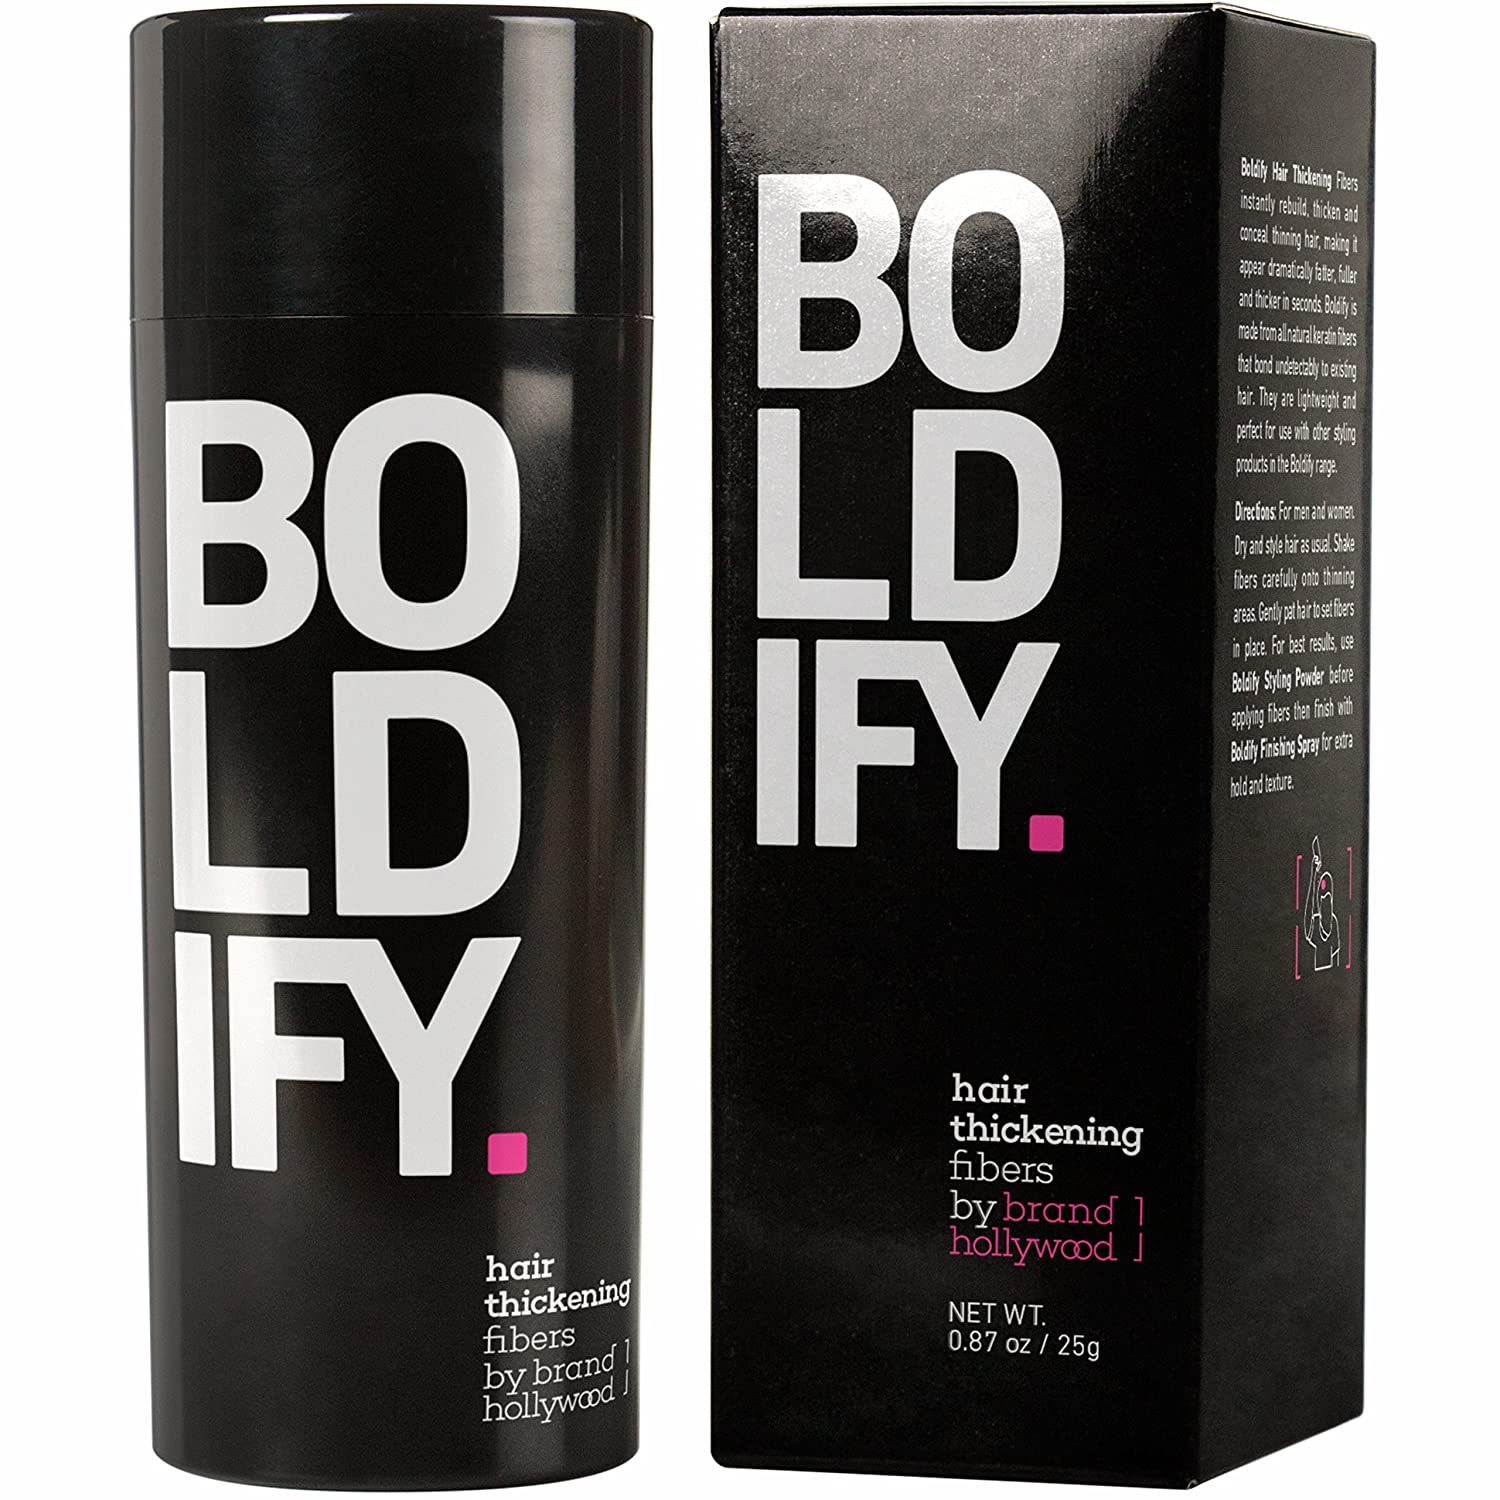 BOLDIFY Hair Fibers for Thinning Hair - 100% Undetectable Keratin Fibers - Giant 25g Bottle - Completely Conceals Hair Loss in 15 Seconds (Light Blonde) Brand Hollywood